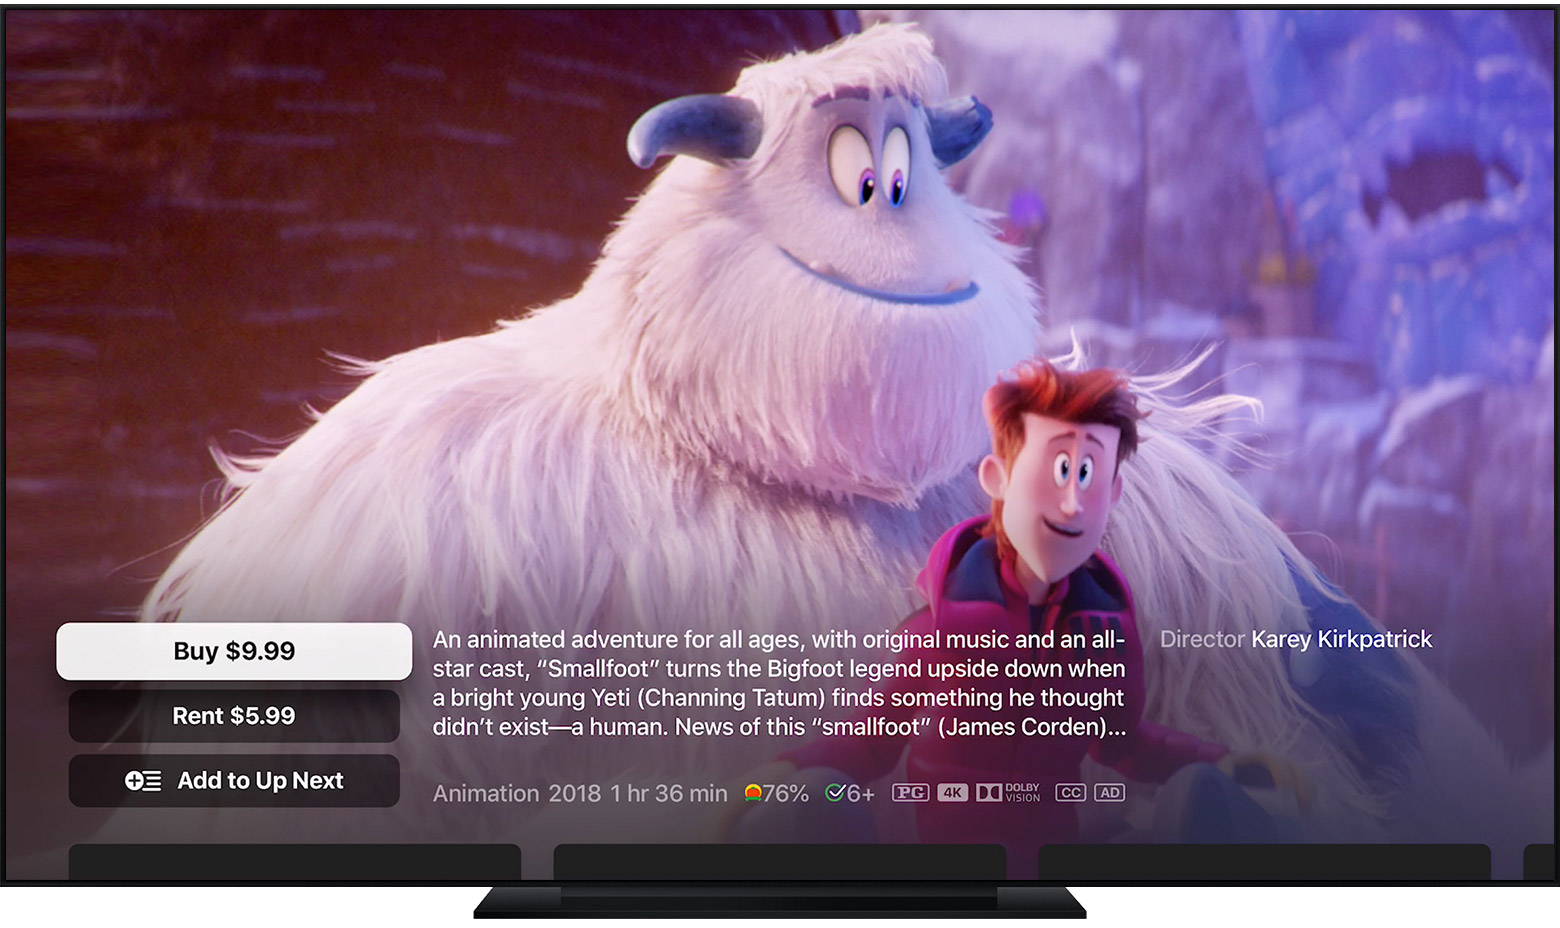 Buy movies and TV shows from the Apple TV app - Apple Support